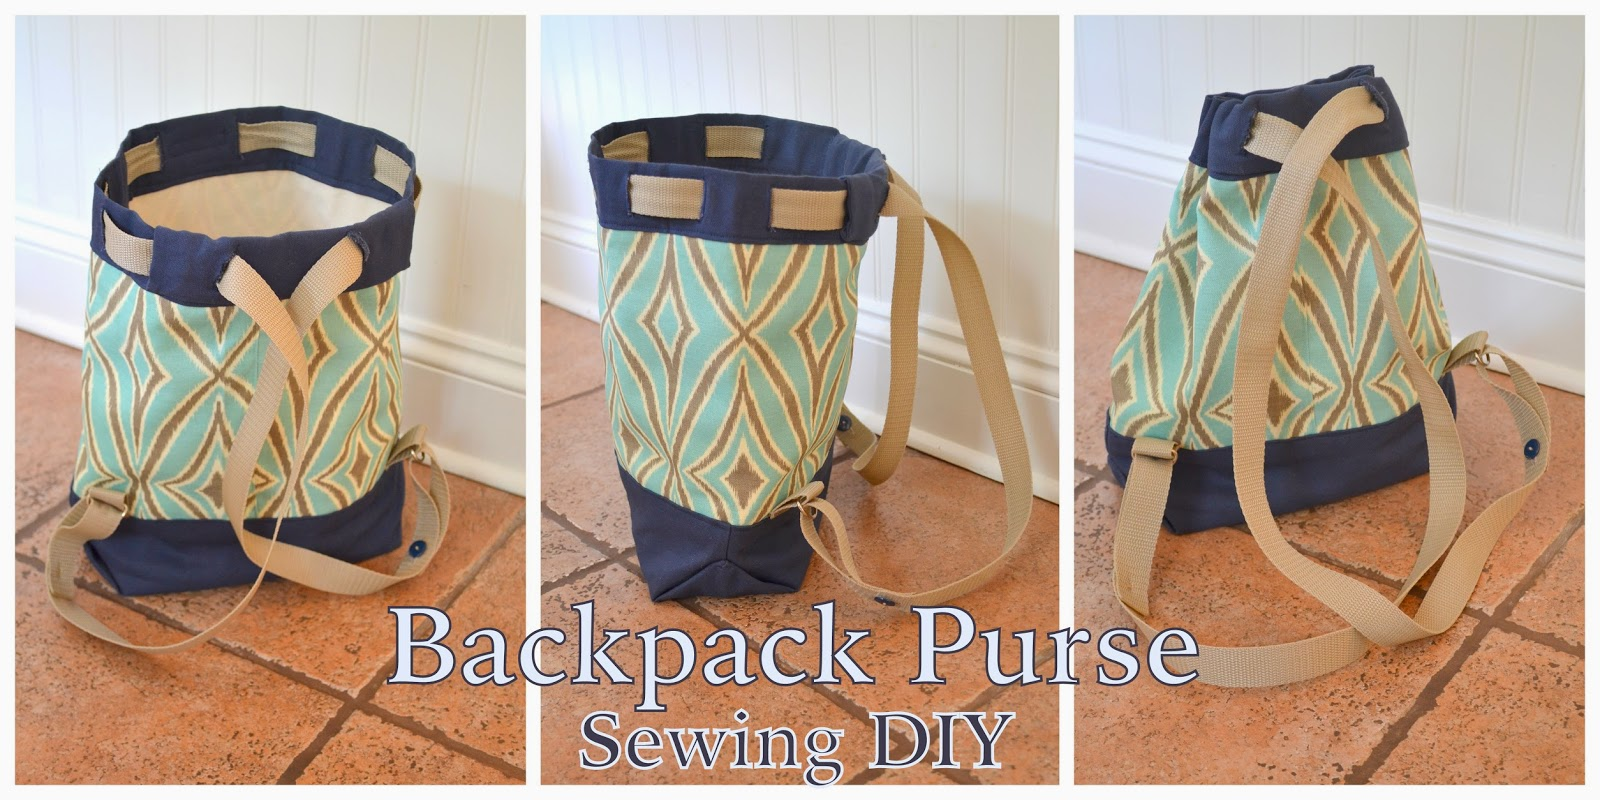 Sewing A Backpack - All About Sewing Tools